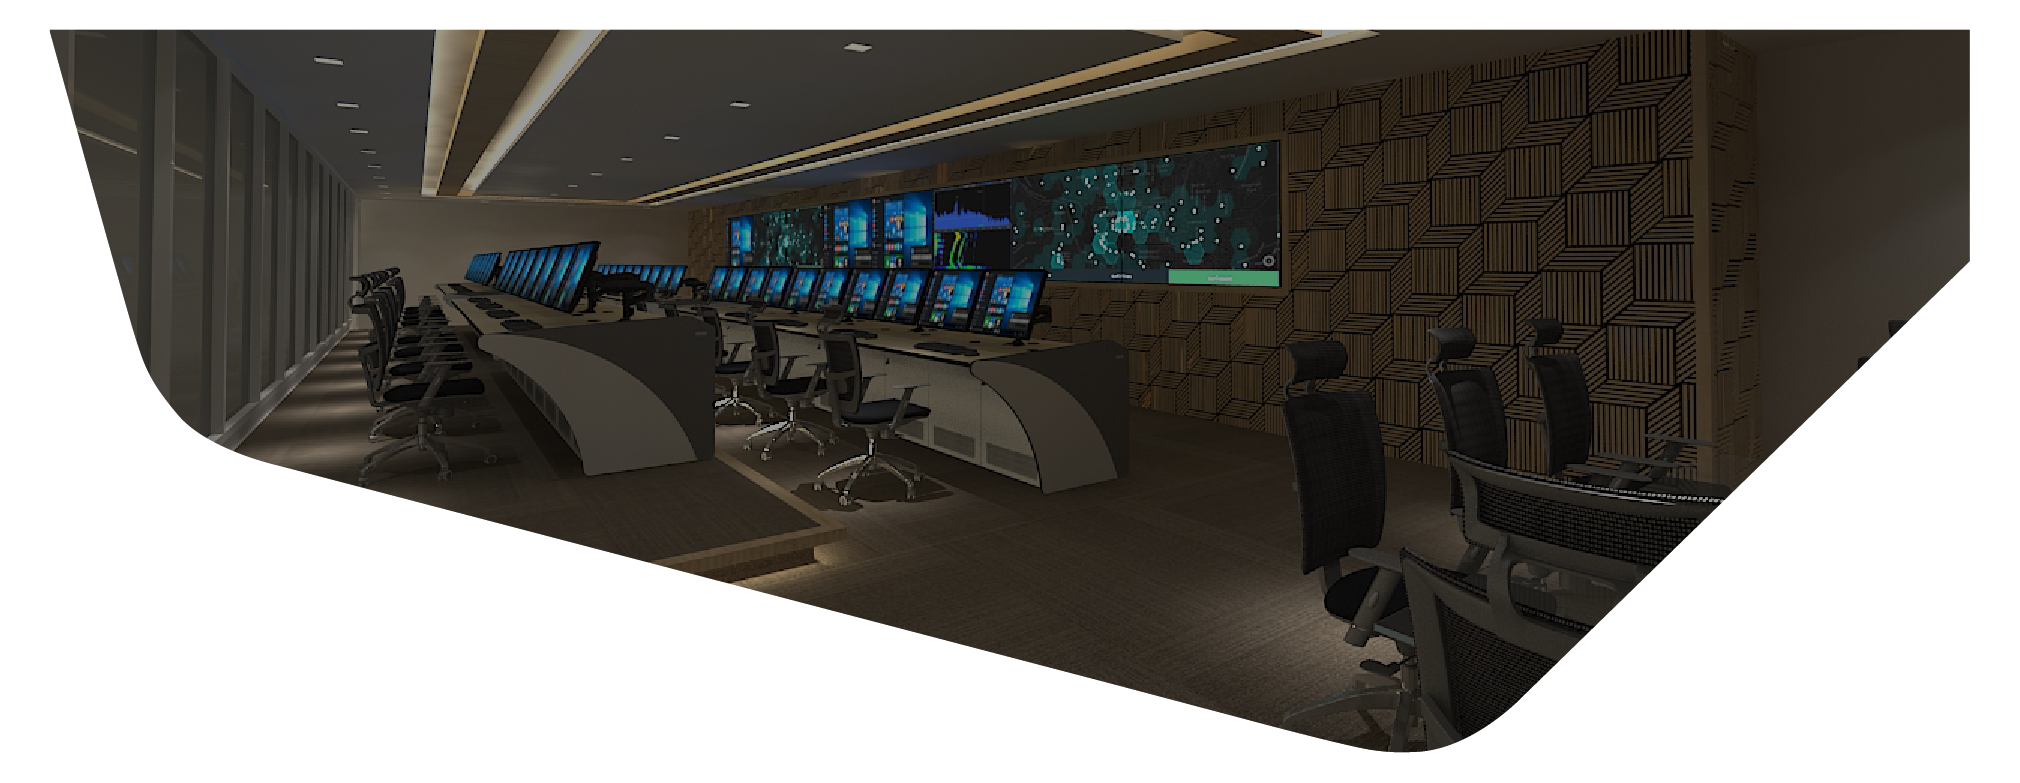 Command Control Room Innovations